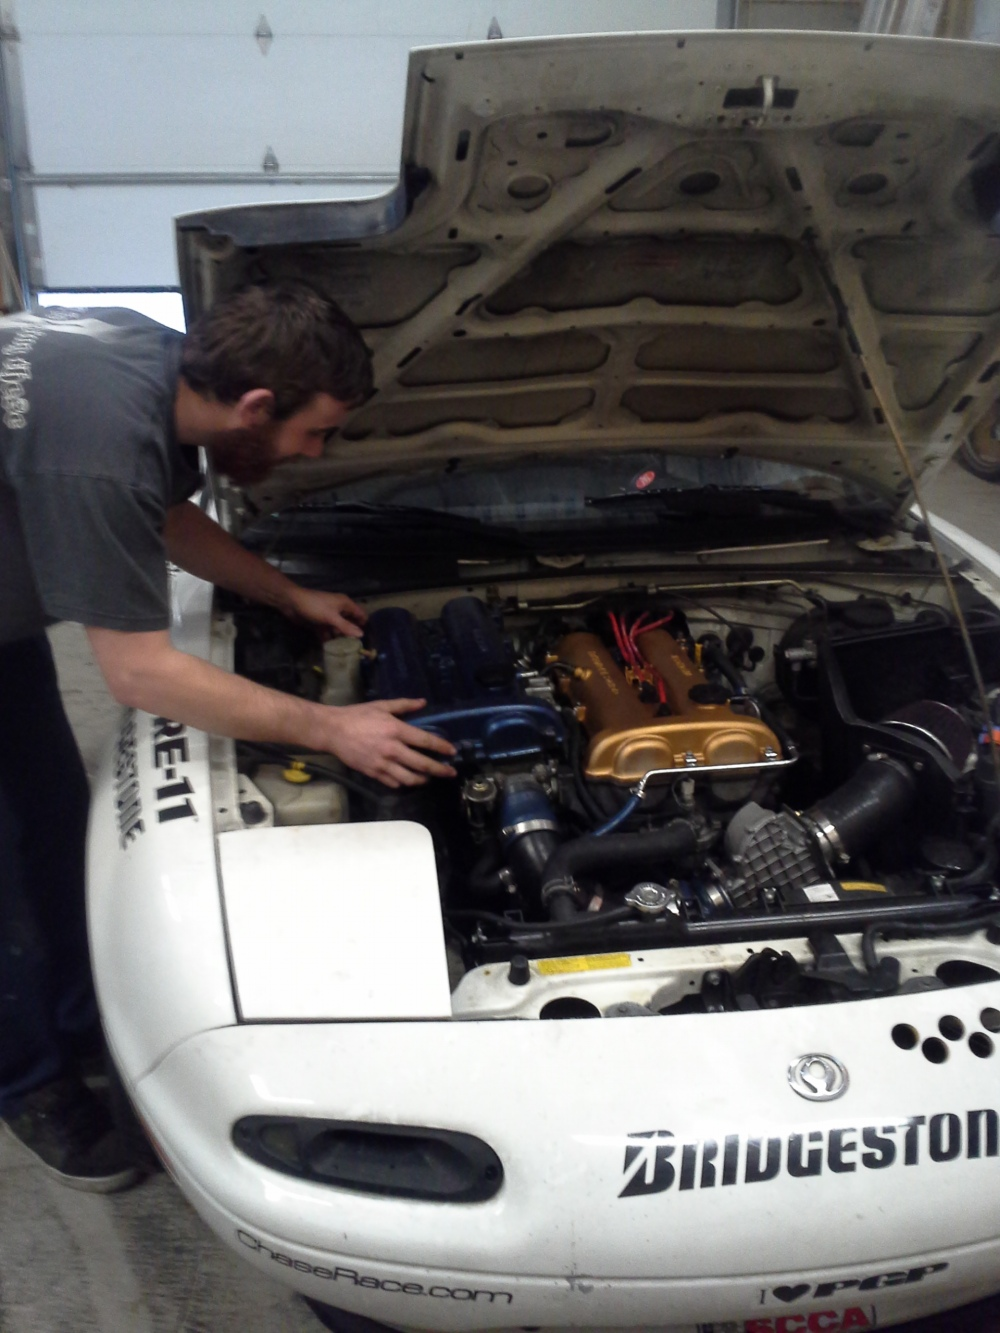 What happens when you have two valve covers? TJ tries to pretend that you have V8 swapped in...